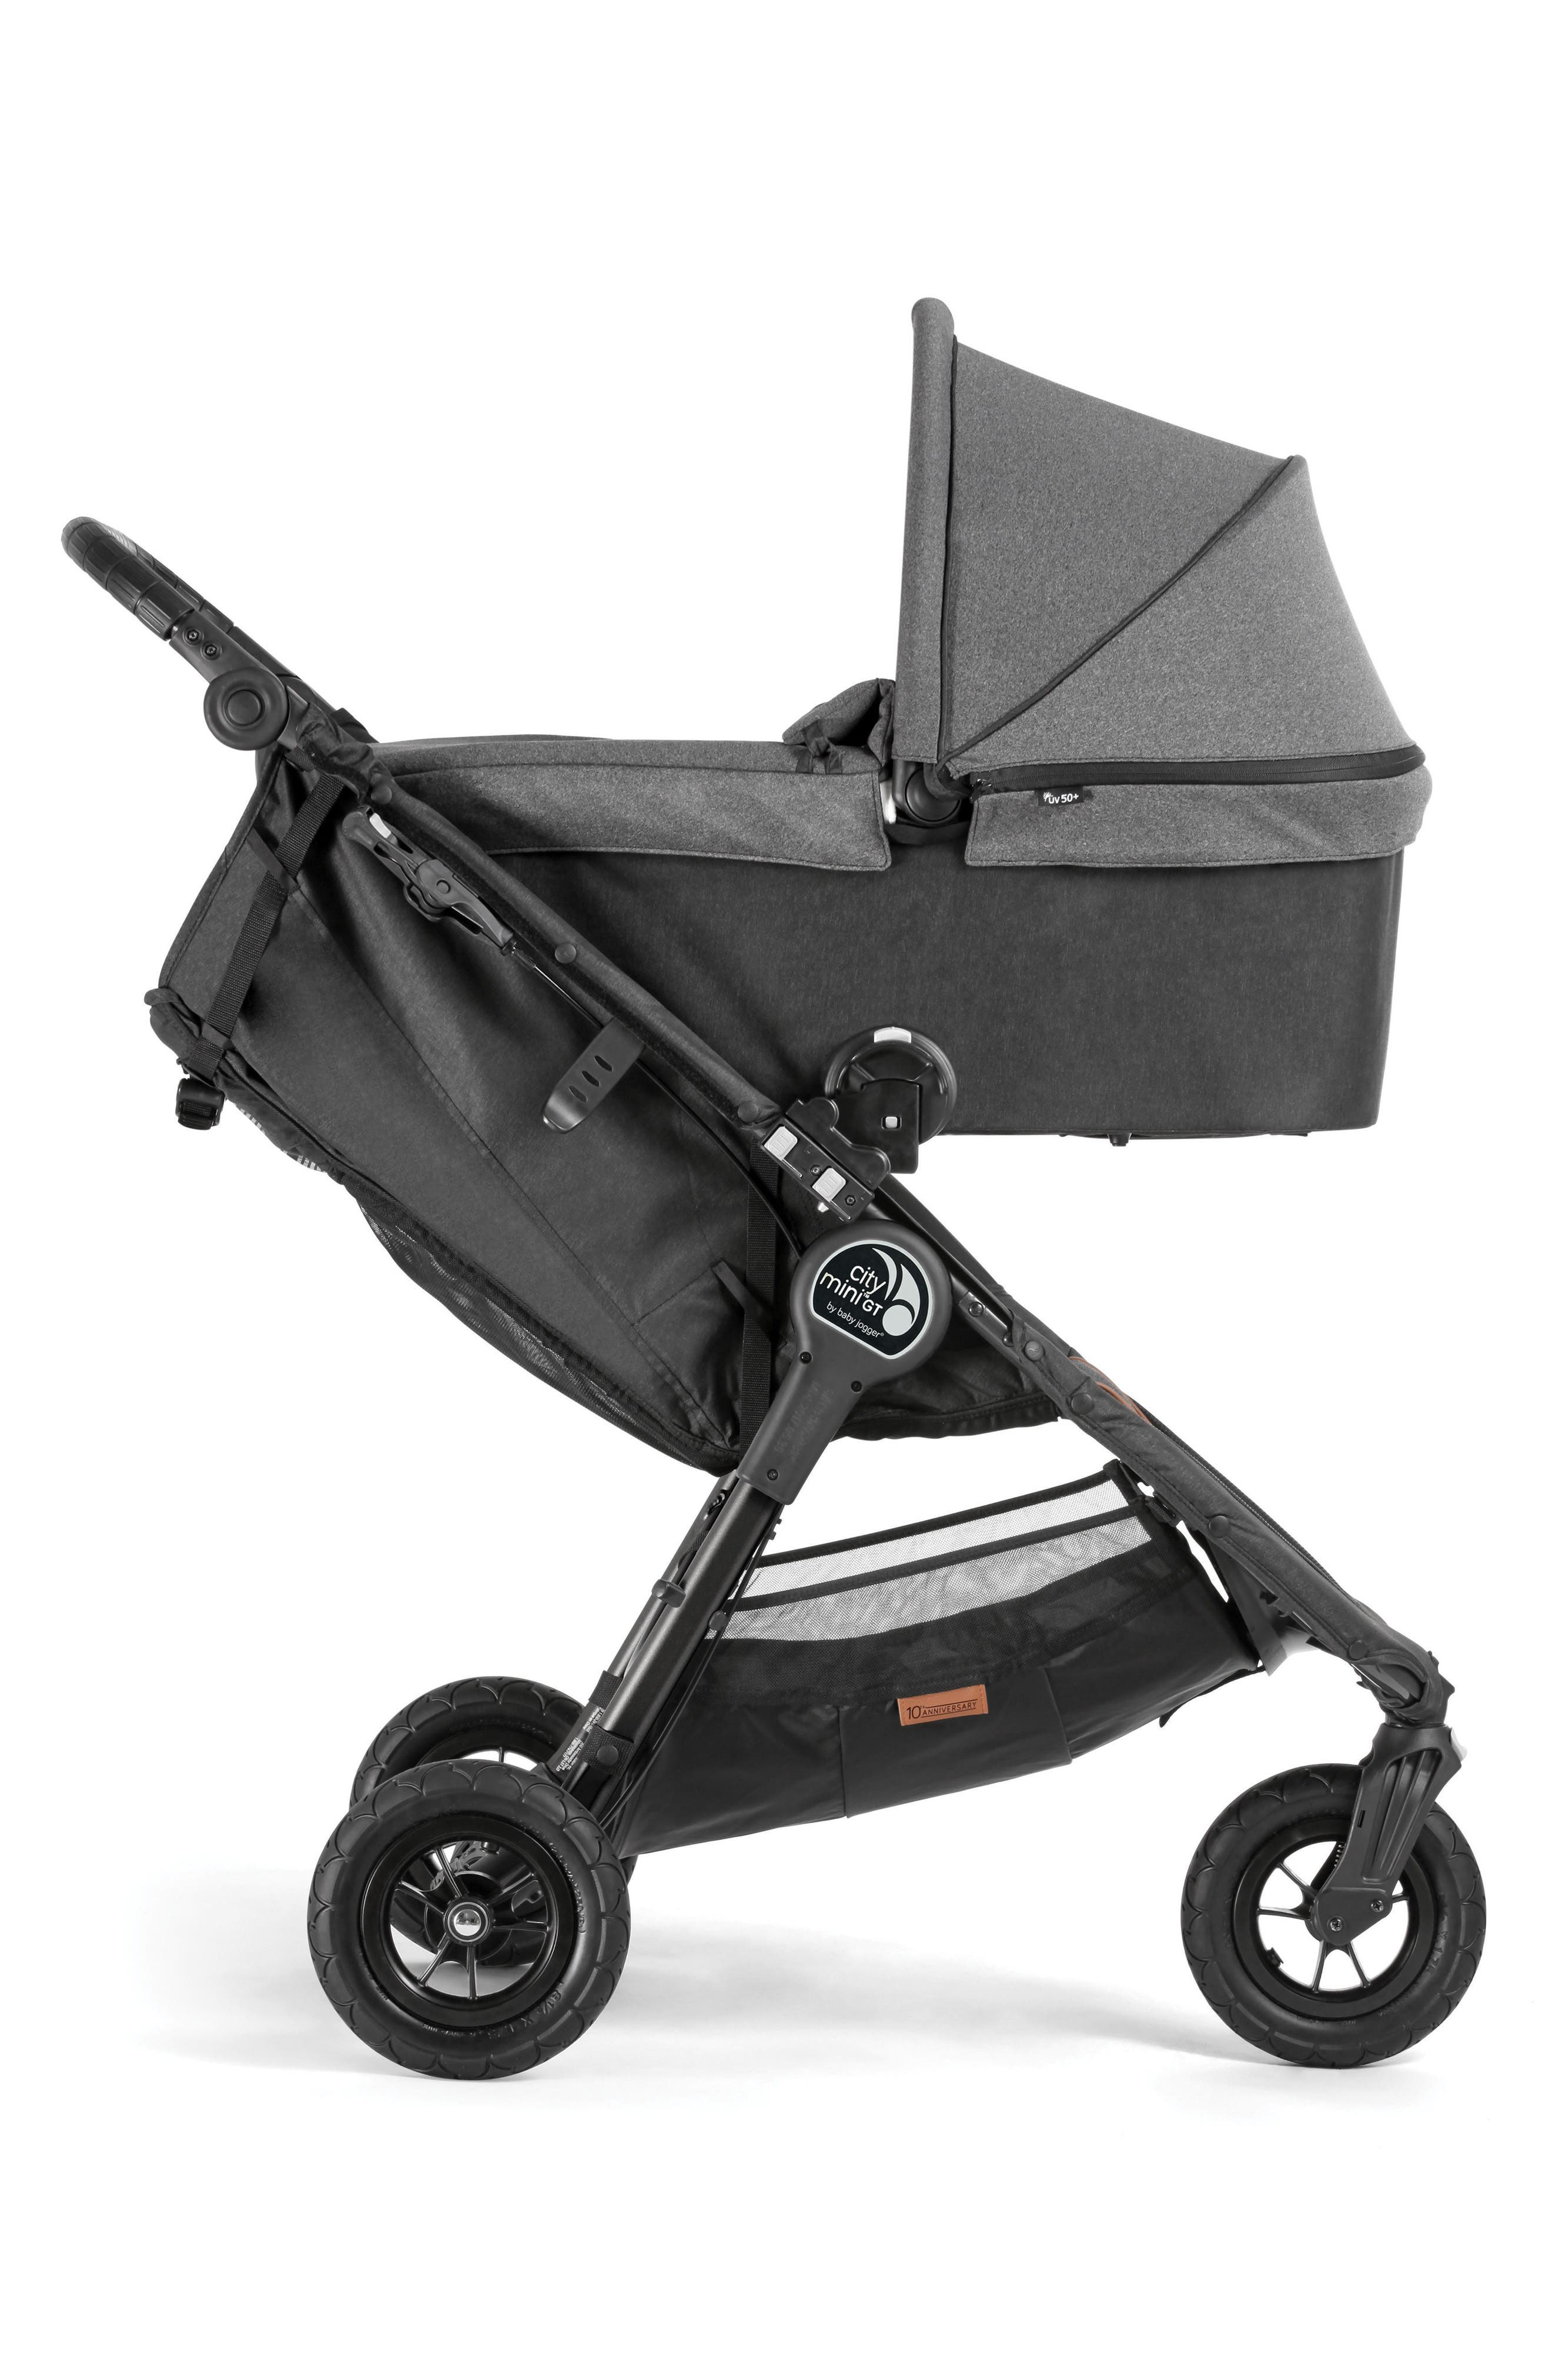 Deluxe Pram Converter Kit for City Mini<sup>®</sup> 2018 Special Edition 10-Year Anniversary All-Terrain Stroller,                             Alternate thumbnail 3, color,                             Grey